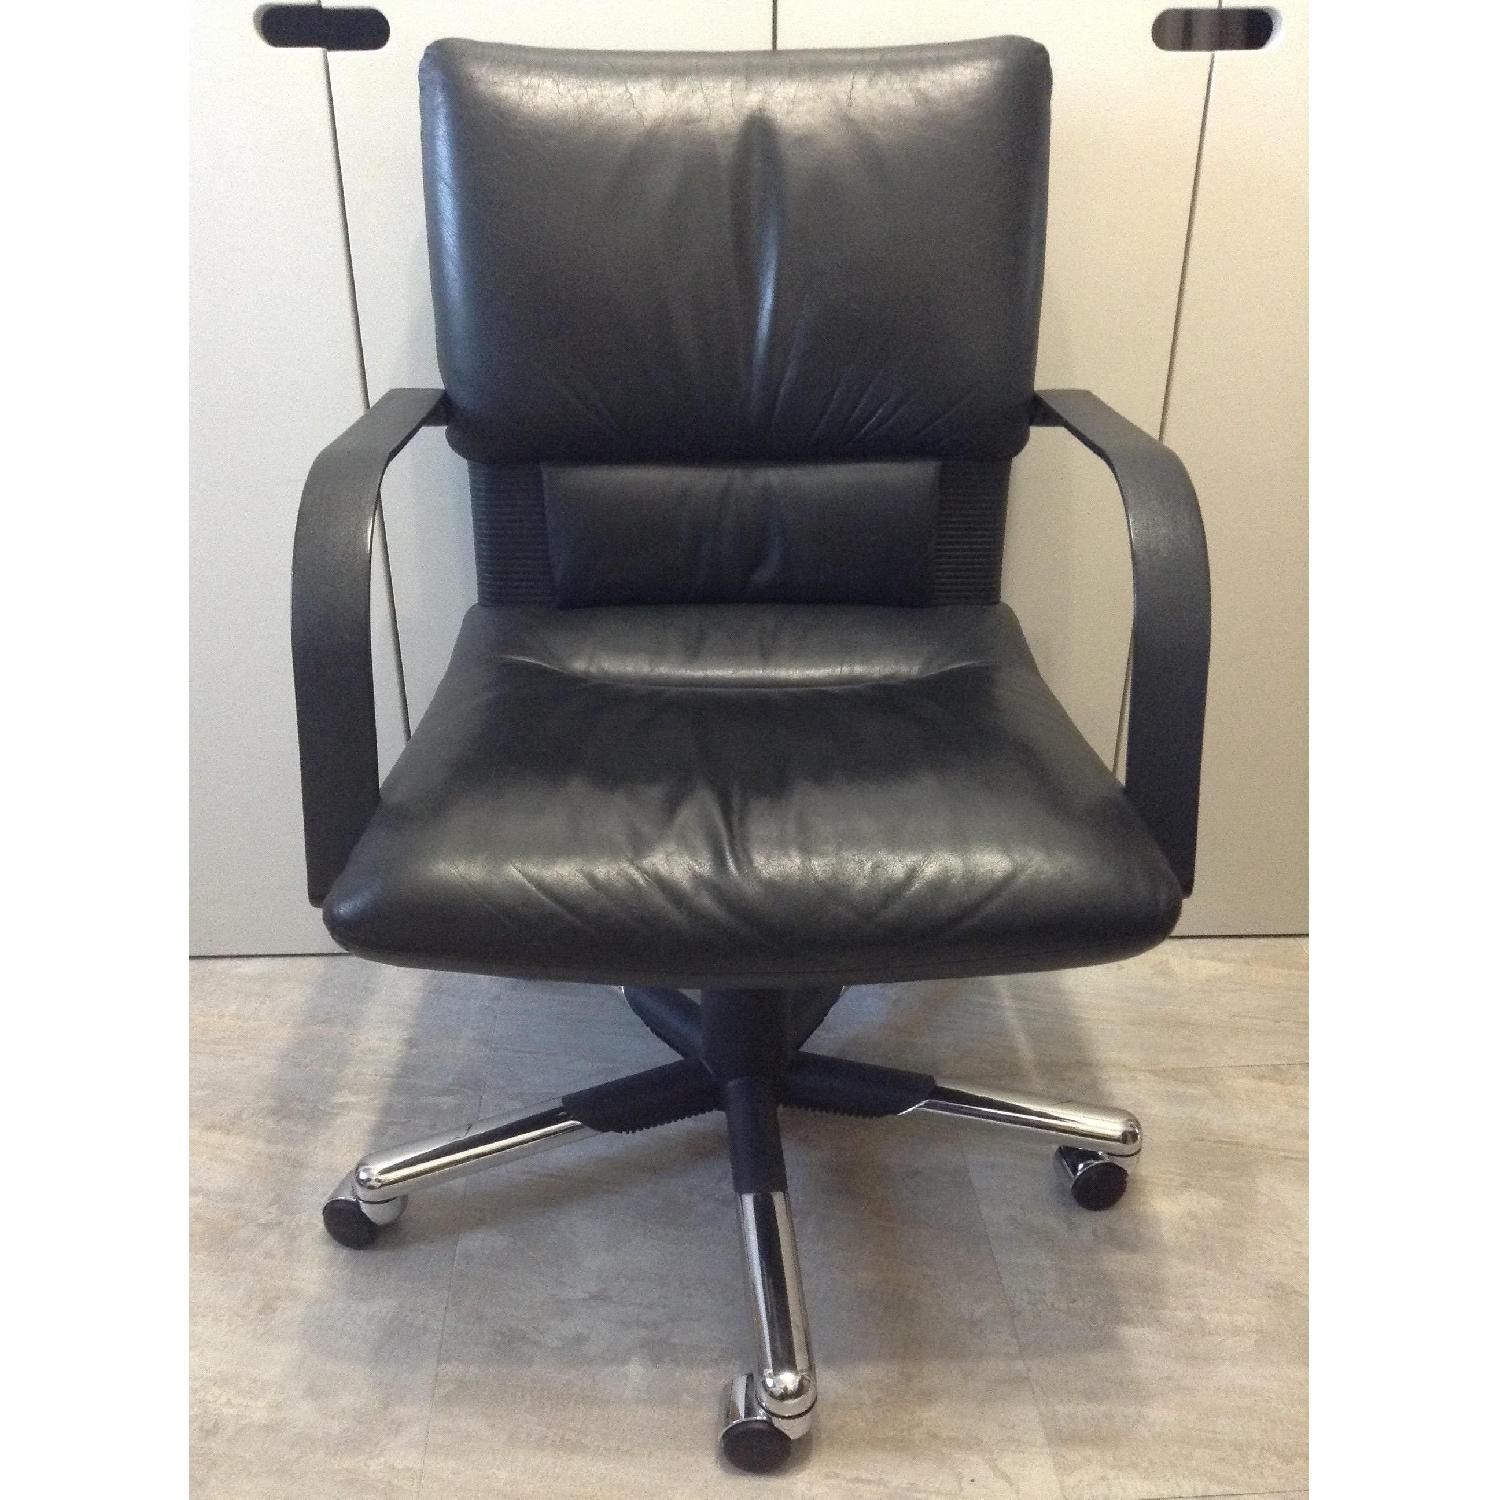 Vitra Black Leather Swivel Chair By Mario Bellini - image-1